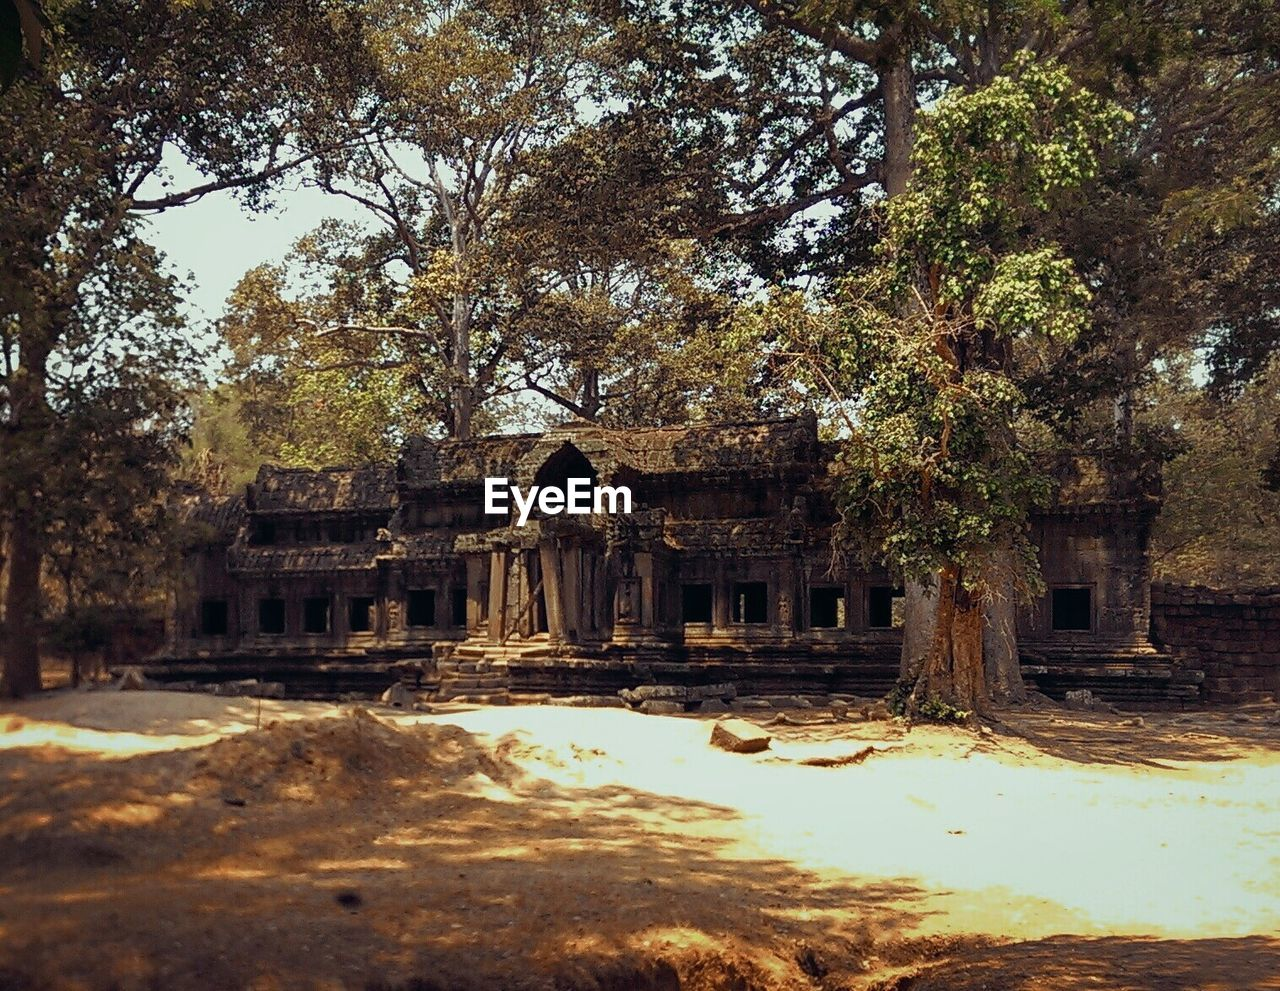 architecture, old ruin, built structure, abandoned, ancient civilization, building exterior, ancient, history, tree, place of worship, day, no people, outdoors